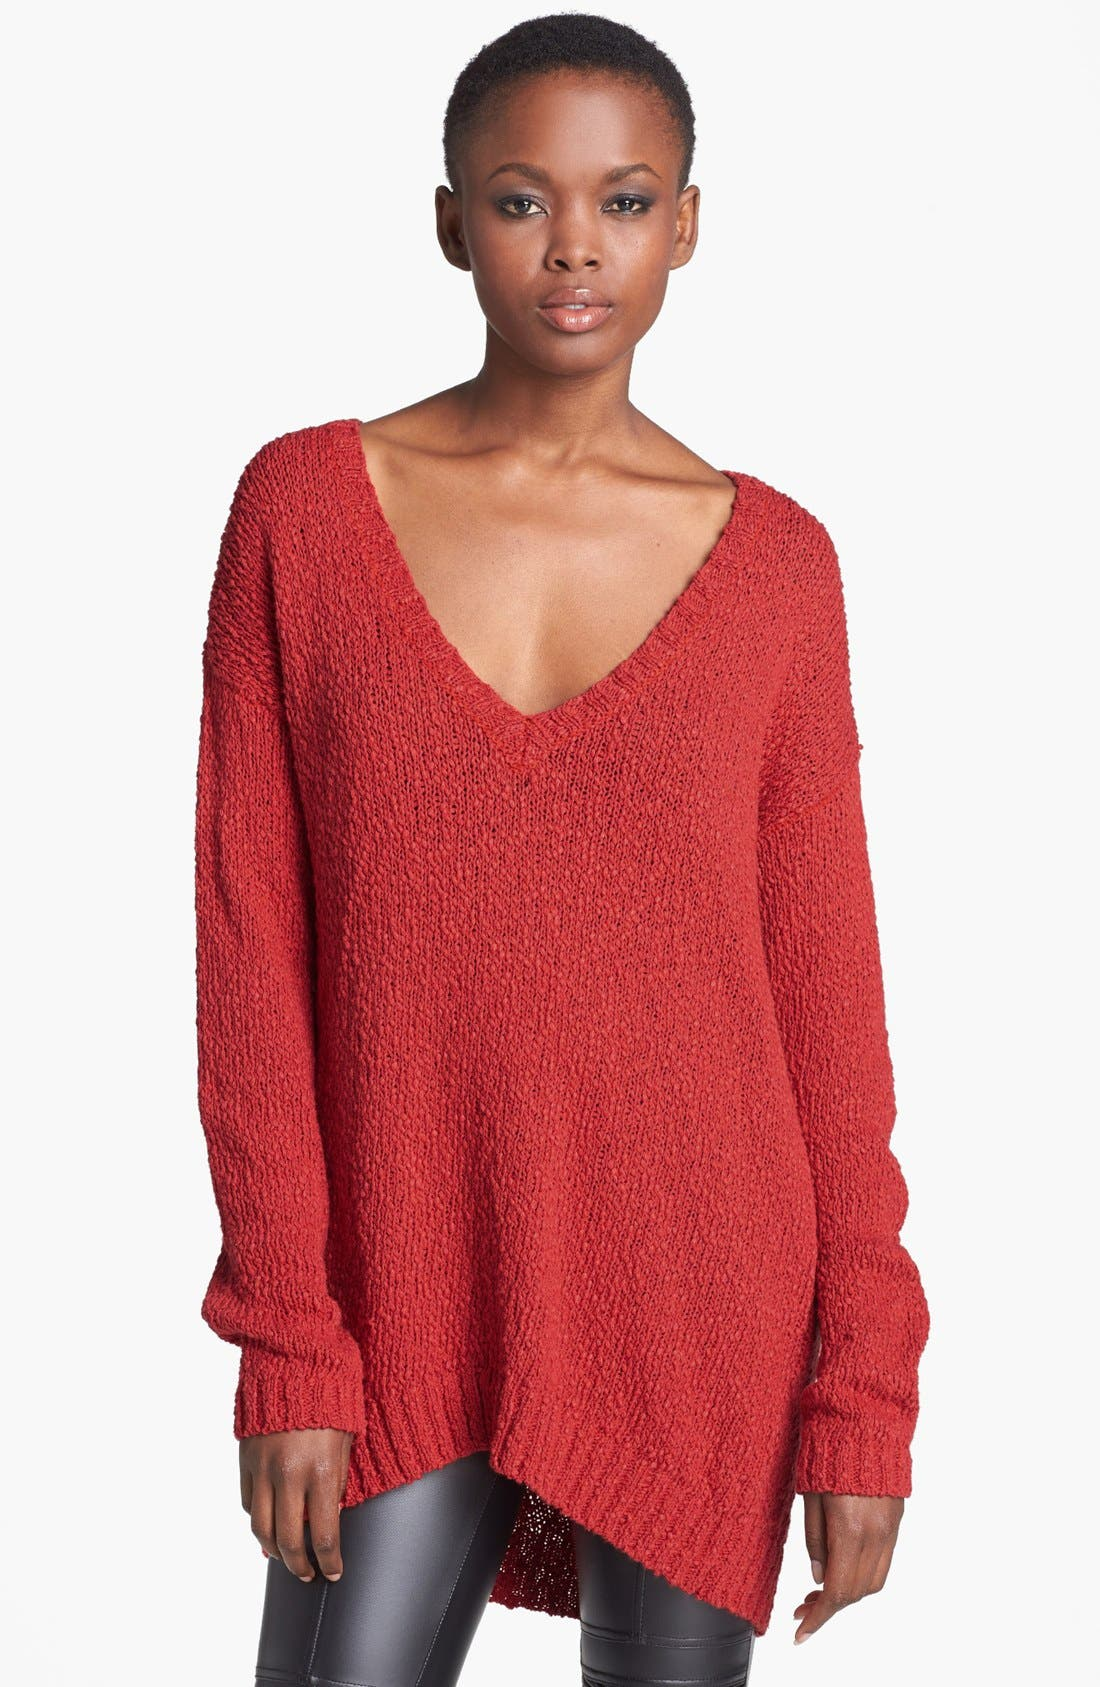 Alternate Image 1 Selected - MINKPINK 'Fader' Oversized Knit Sweater